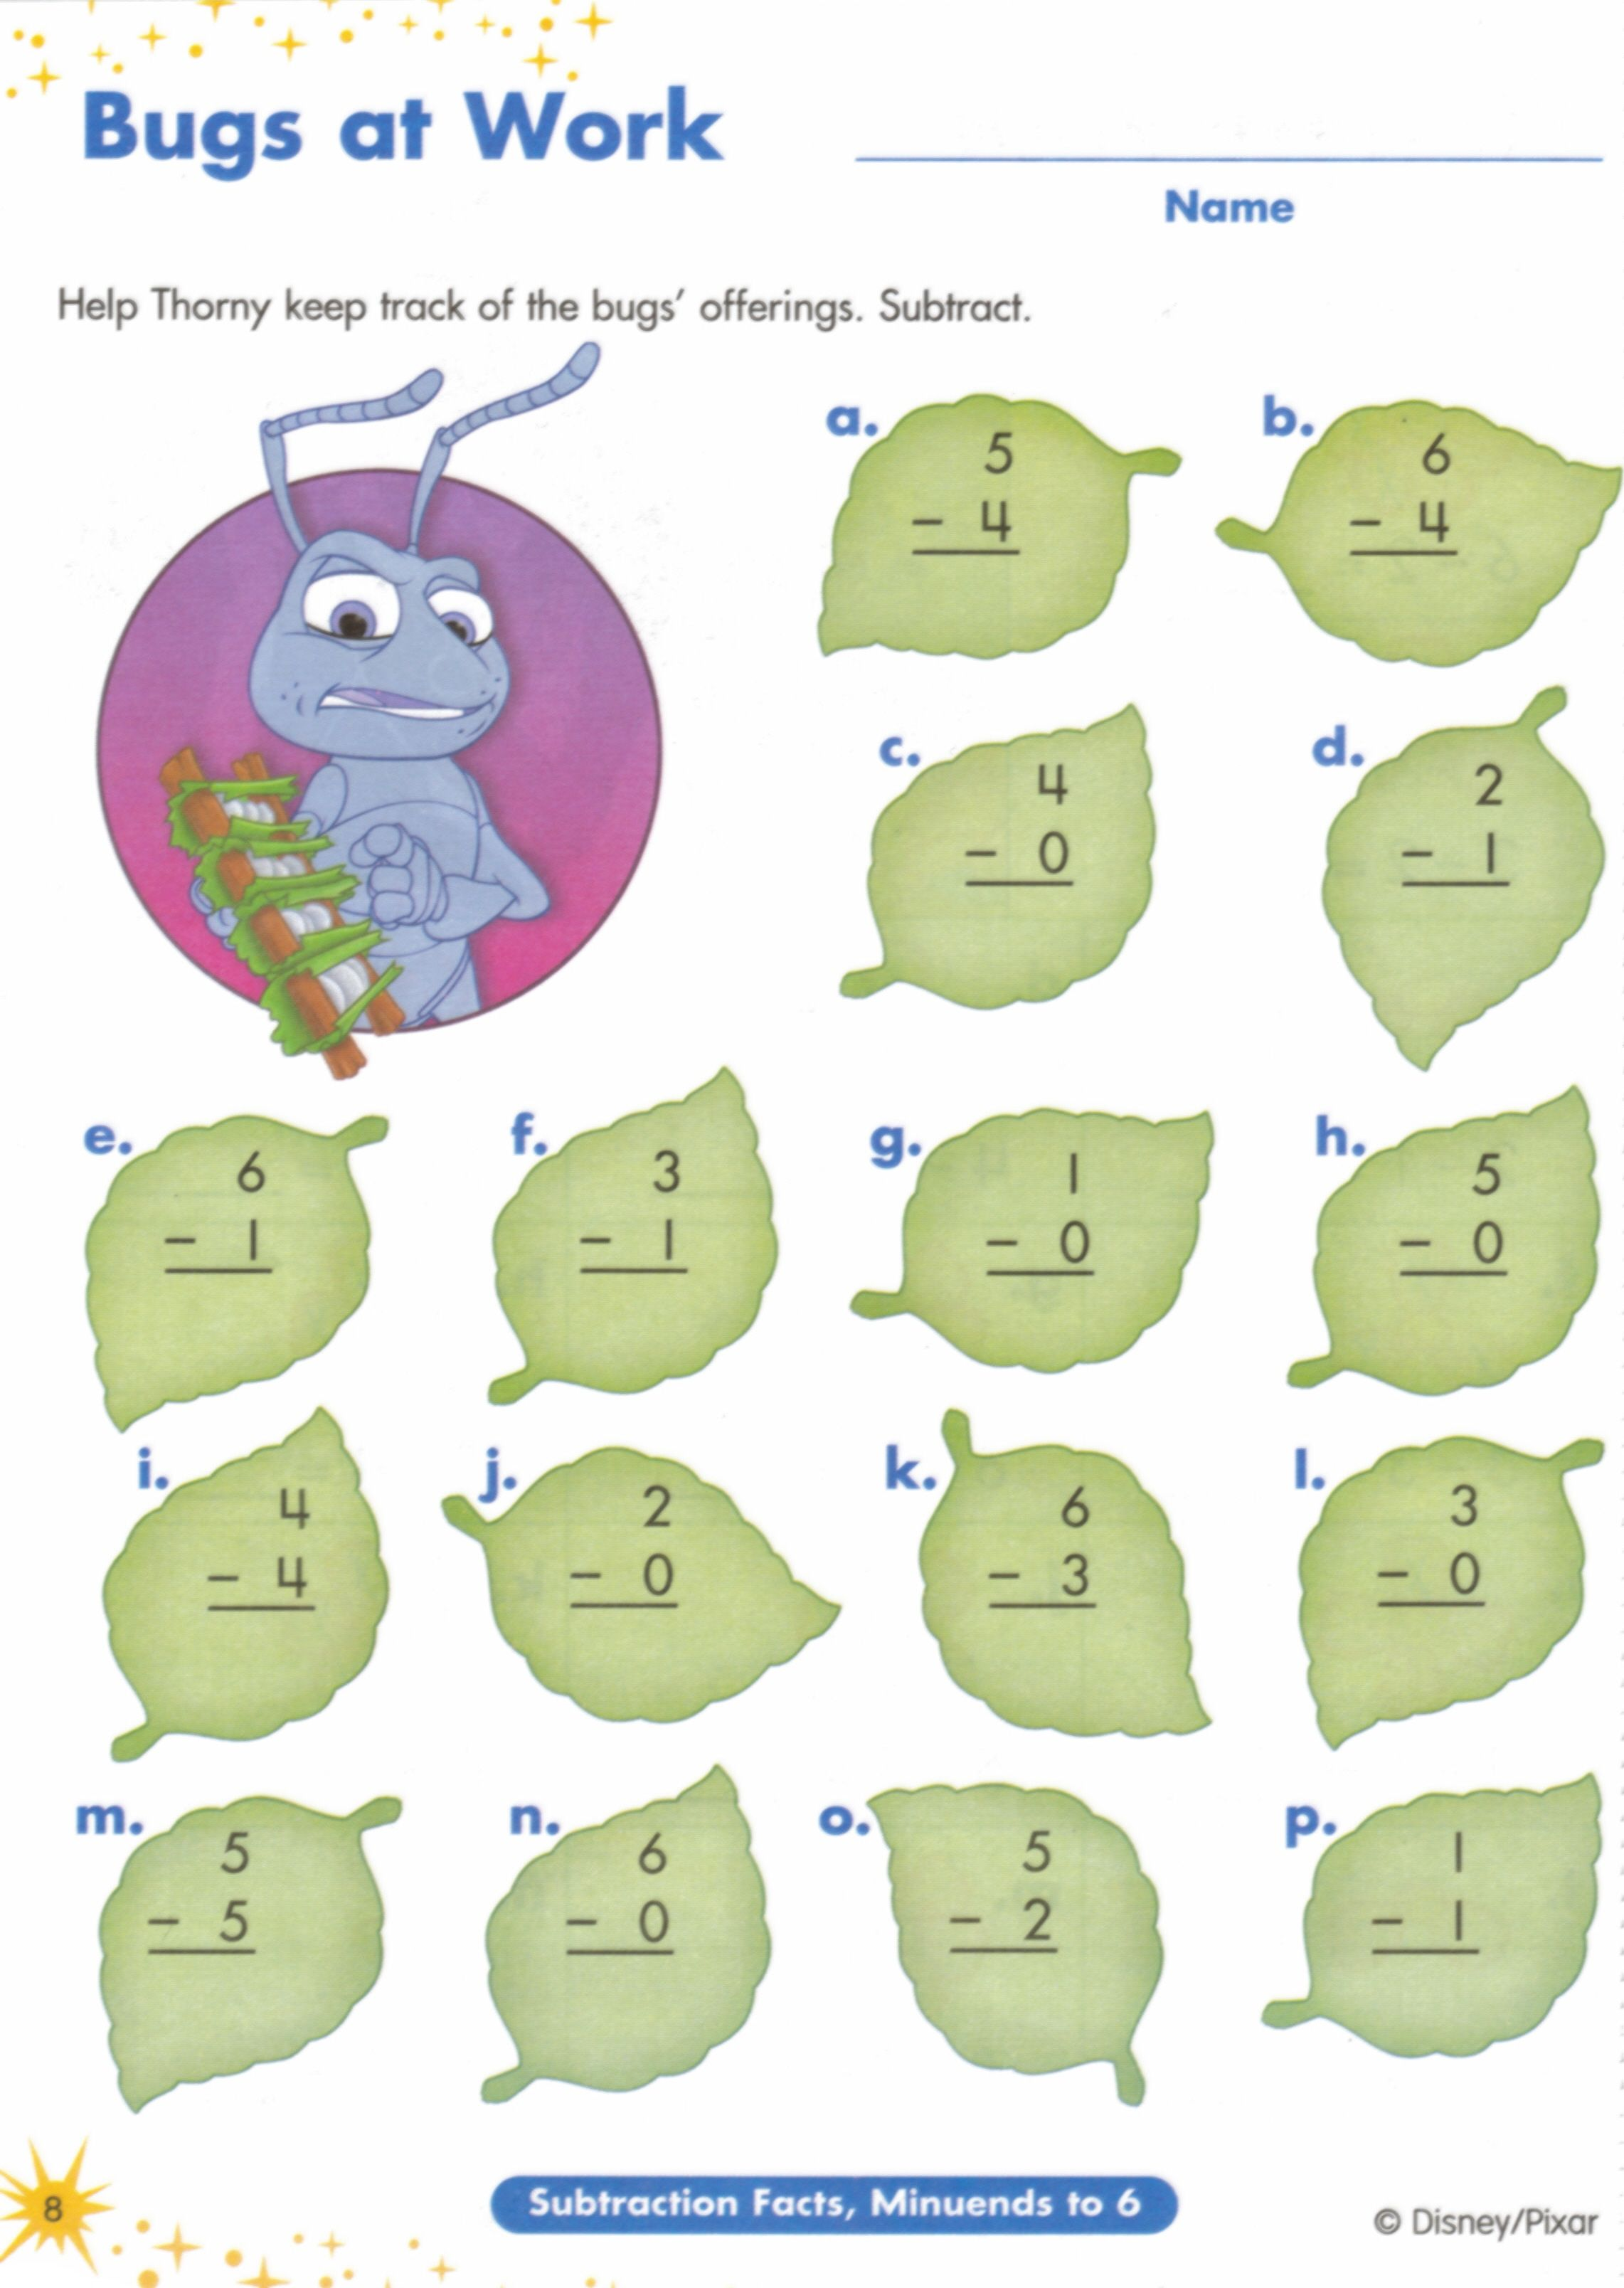 Proatmealus  Prepossessing  Images About Worksheets On Pinterest  Fun Facts For Kids  With Fair  Images About Worksheets On Pinterest  Fun Facts For Kids Earth Day Worksheets And Jungles With Cool Math Worksheets For Grade  Free Printable Also Trace The Line Worksheets In Addition Grade  Clock Worksheets And Soft C Worksheet As Well As Context Clues Worksheets Grade  Additionally Free Comprehension Worksheet From Pinterestcom With Proatmealus  Fair  Images About Worksheets On Pinterest  Fun Facts For Kids  With Cool  Images About Worksheets On Pinterest  Fun Facts For Kids Earth Day Worksheets And Jungles And Prepossessing Math Worksheets For Grade  Free Printable Also Trace The Line Worksheets In Addition Grade  Clock Worksheets From Pinterestcom